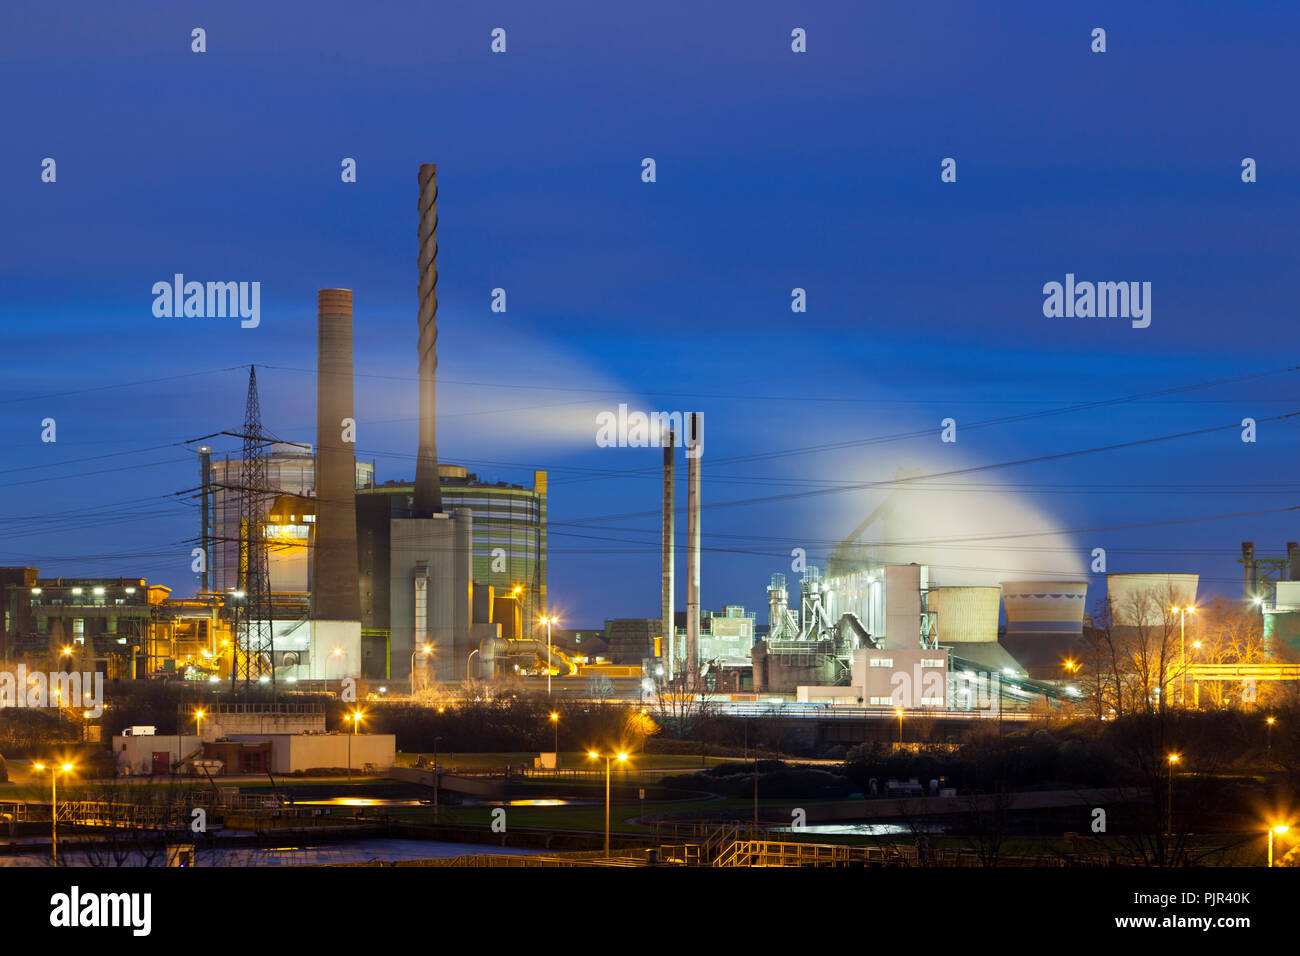 Industry view in Duisburg, Germany. - Stock Image